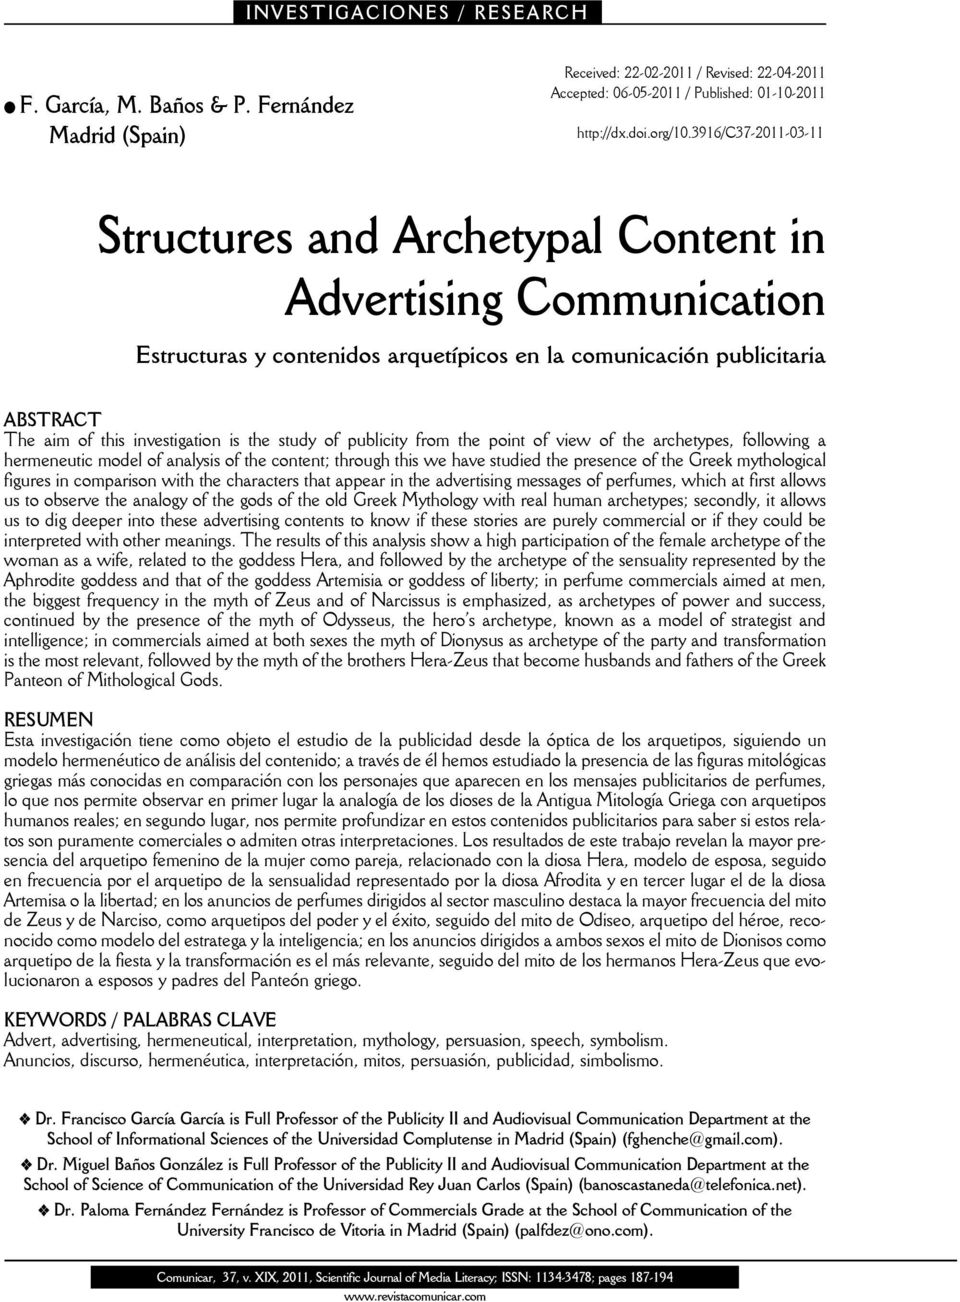 study of publicity from the point of view of the archetypes, following a hermeneutic model of analysis of the content; through this we have studied the presence of the Greek mythological figures in